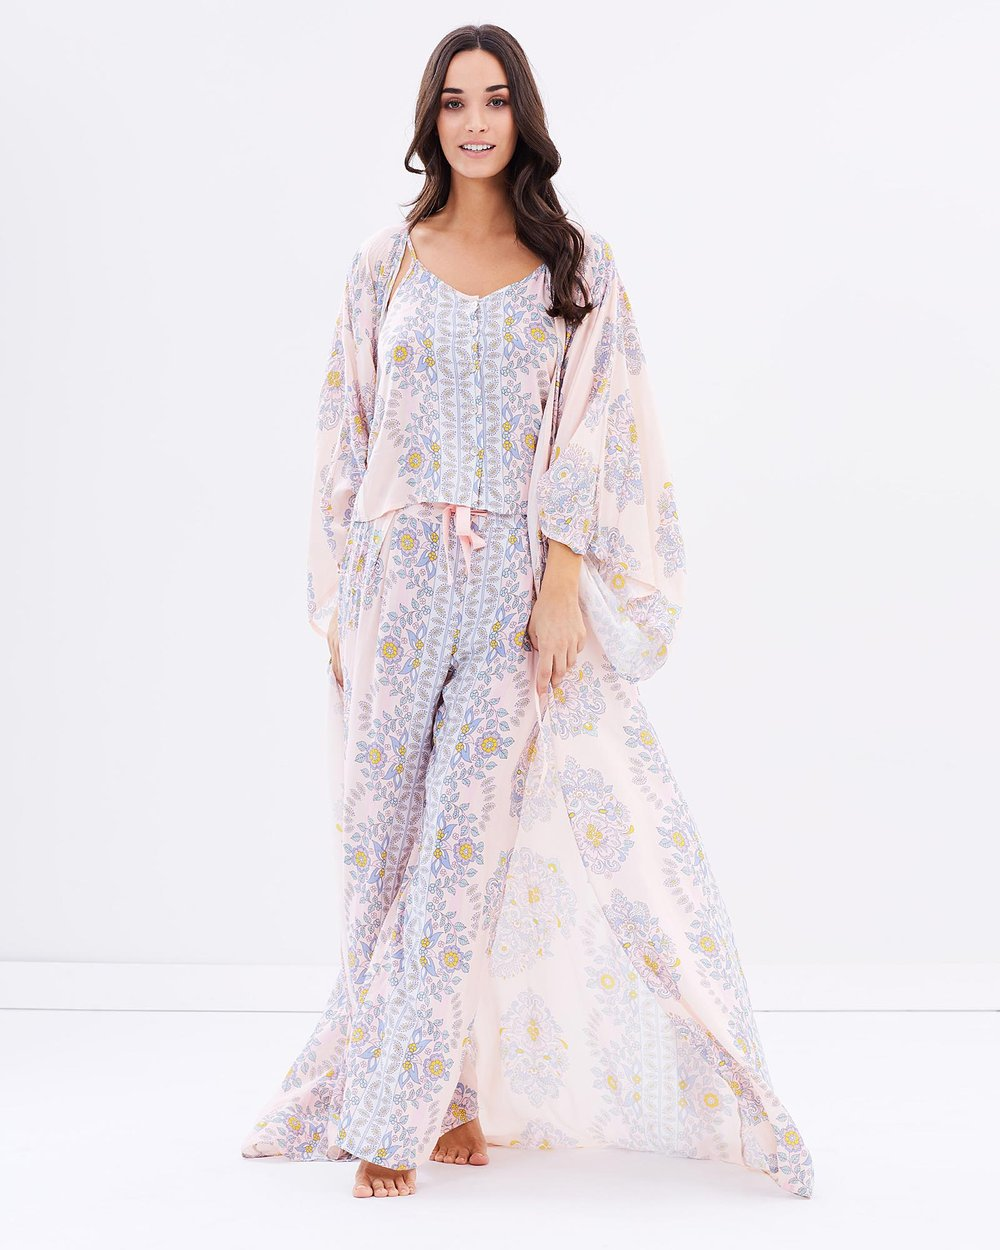 Gowns | Gowns Online | Buy Womens Gowns & Robes Australia |- THE ICONIC